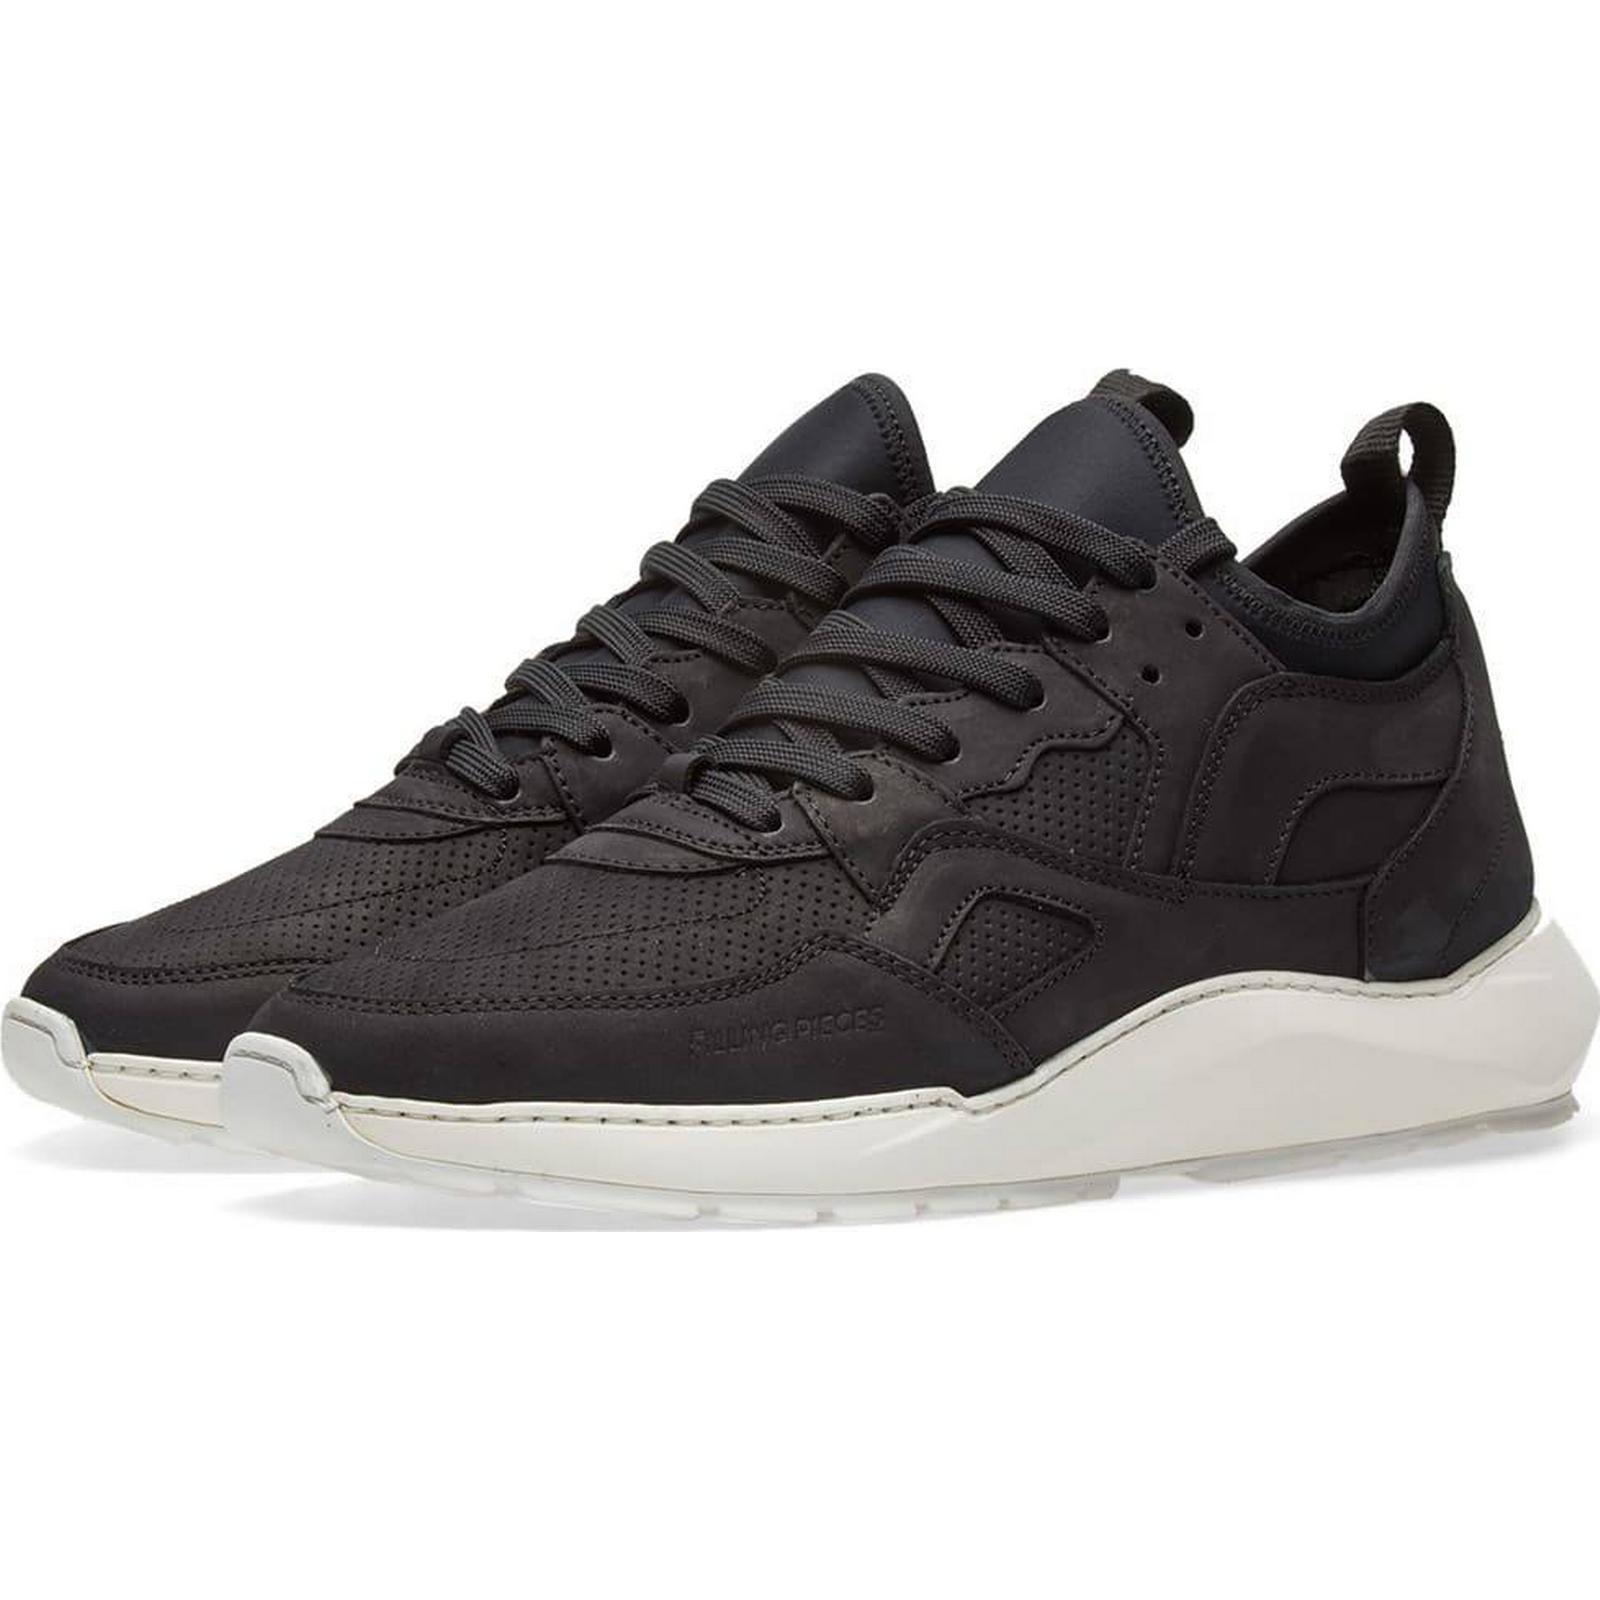 Filling Pieces Black-Men's/Women's-2018 Low Arch Runner Sneaker Black-Men's/Women's-2018 Pieces New 408dd2